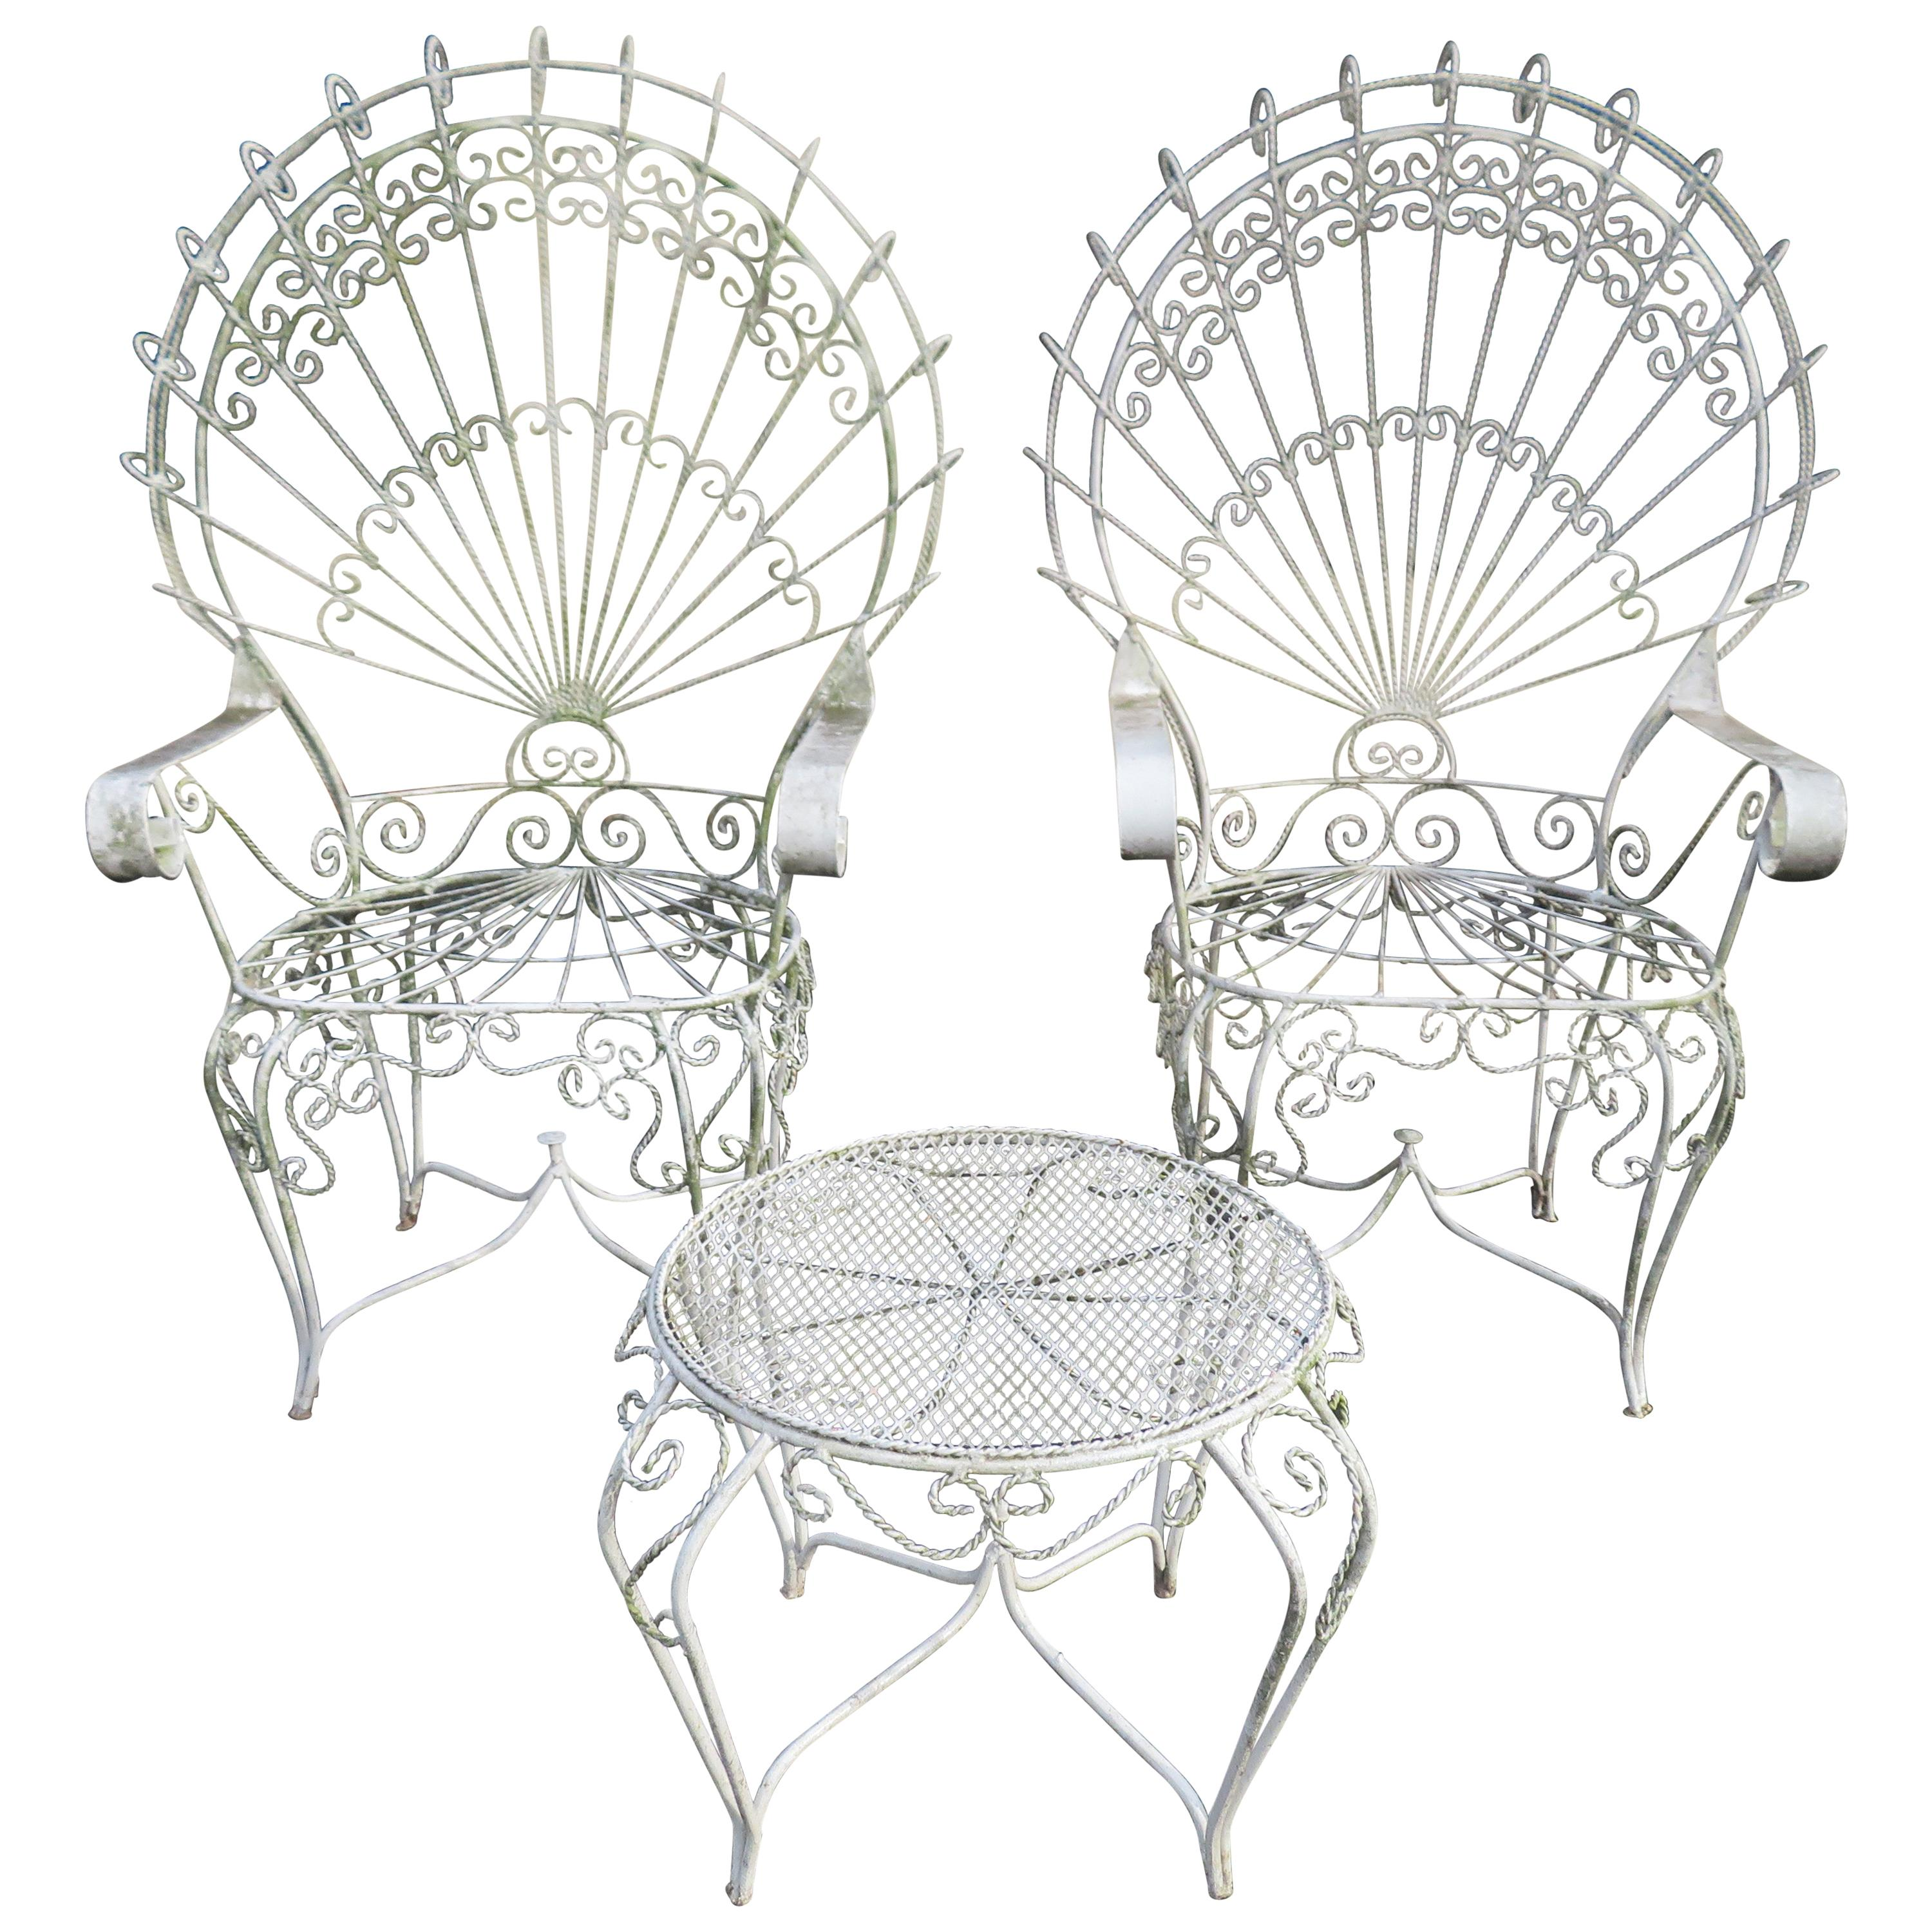 1960s patio and garden furniture 217 for sale at 1stdibs 1980s Bedroom Furniture